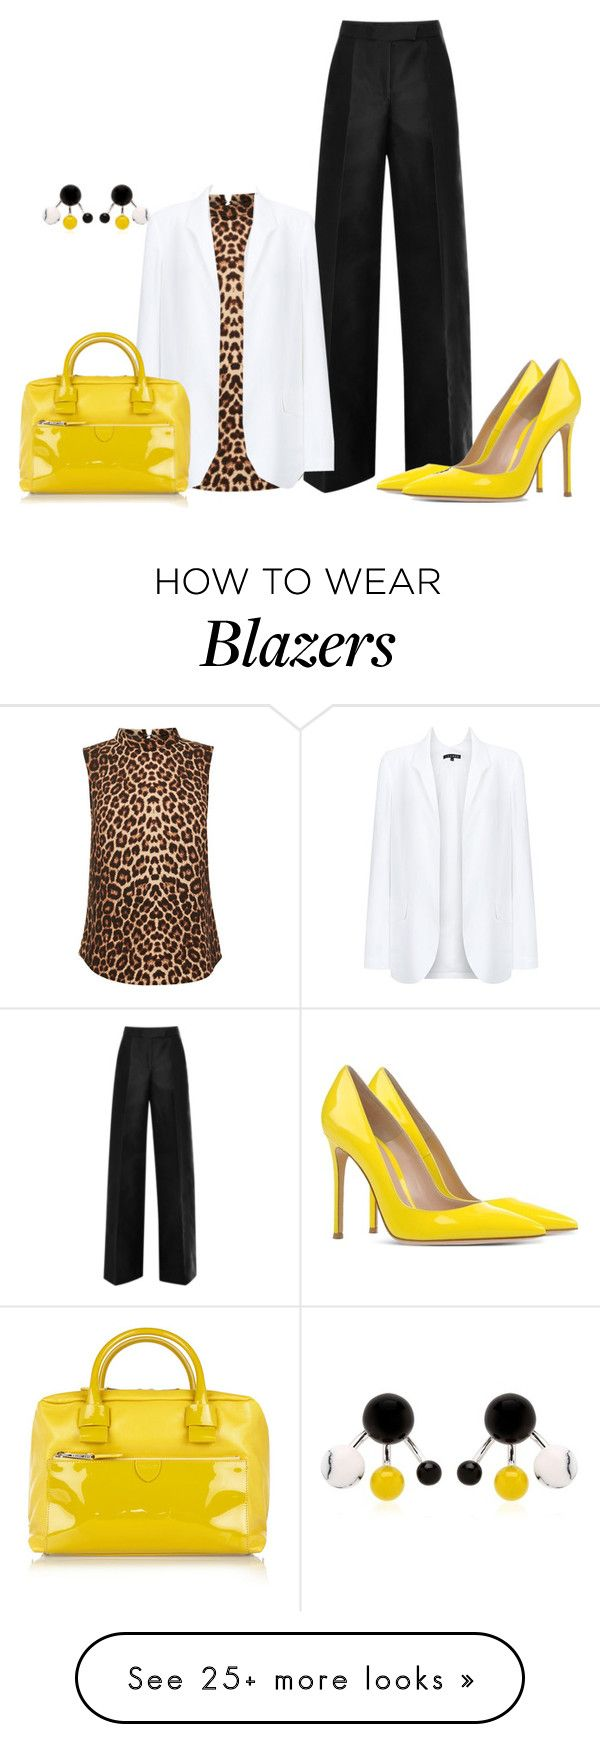 """Wild Sunsplash"" by sweetnuff on Polyvore featuring Antonio Berardi, Oasis, Theory, Gianvito Rossi, Marc Jacobs and Eshvi"